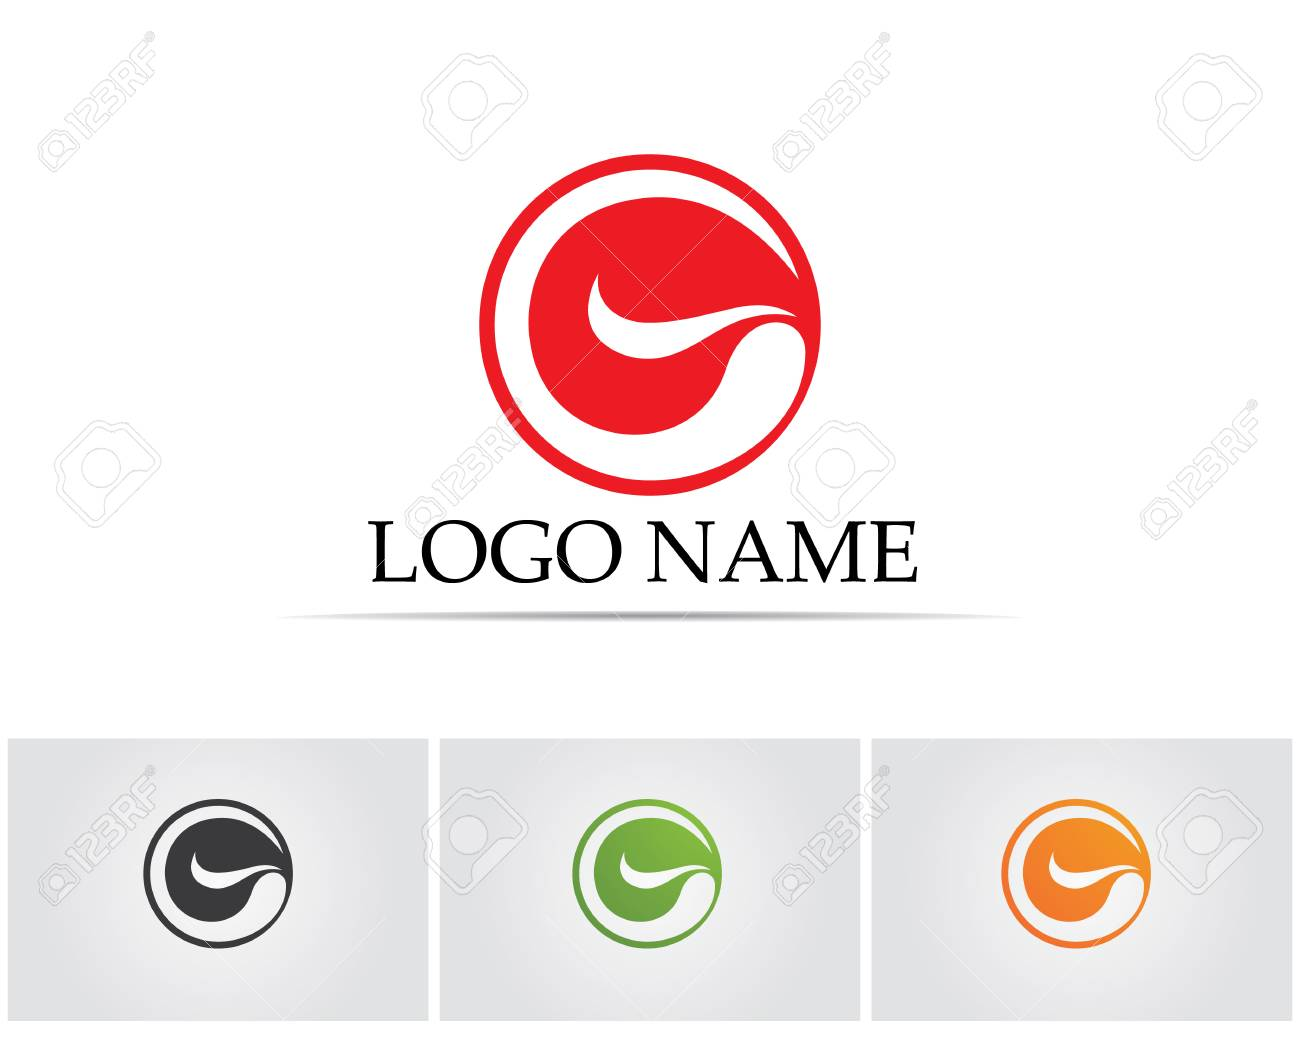 G Letters Logo And Symbols Royalty Free Cliparts Vectors And Stock